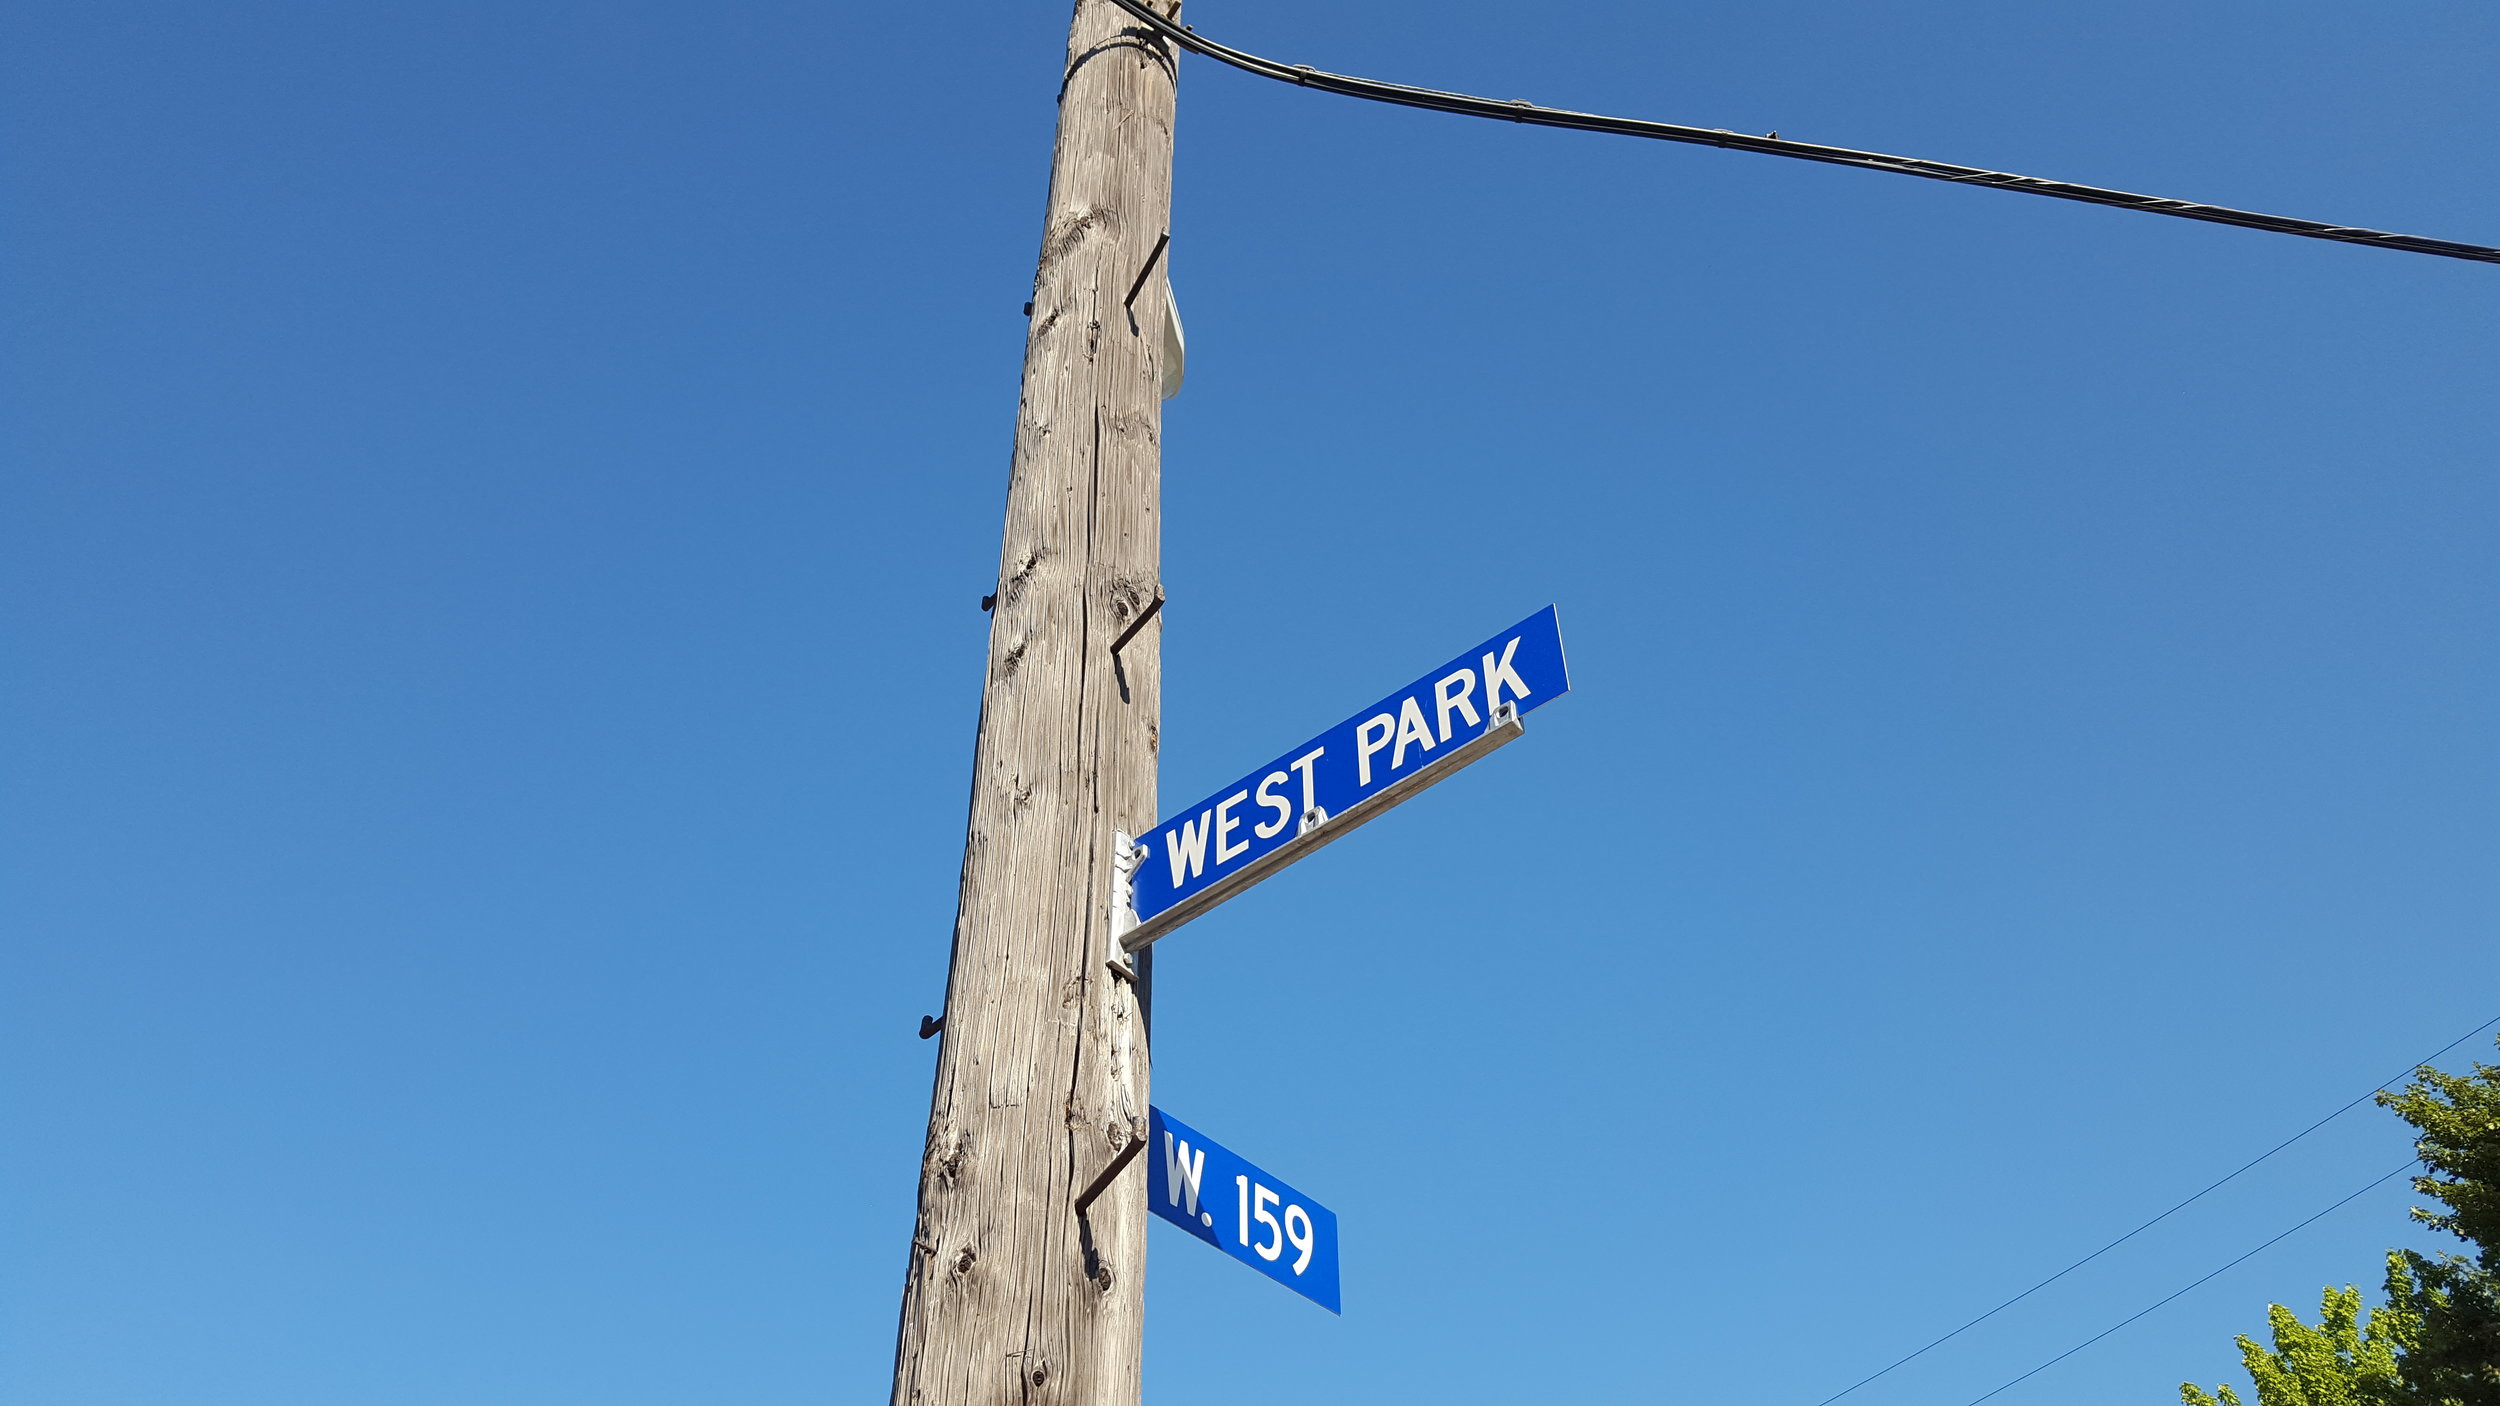 corner of west park and 159th